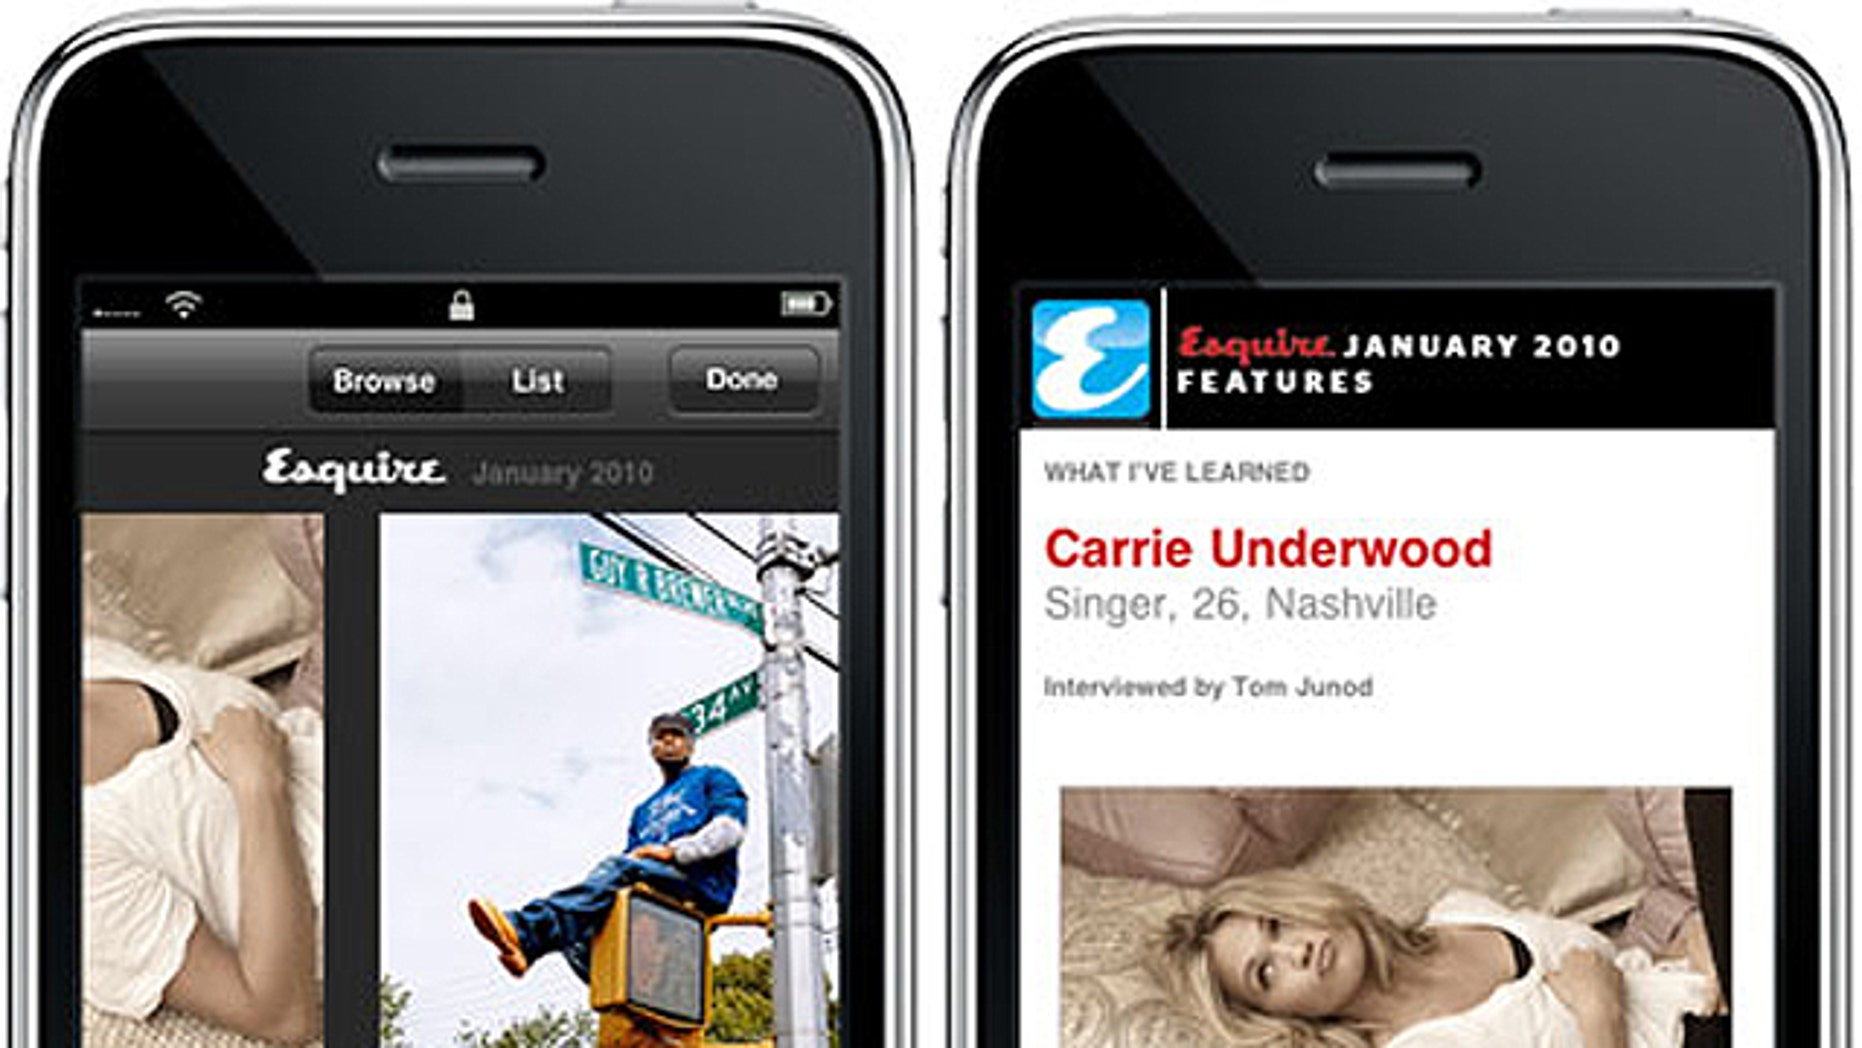 A demonstration of Esquire's iPhone app is spotlighted on Next Media's website -- even though it appears the company is targeting Android smartphones first.